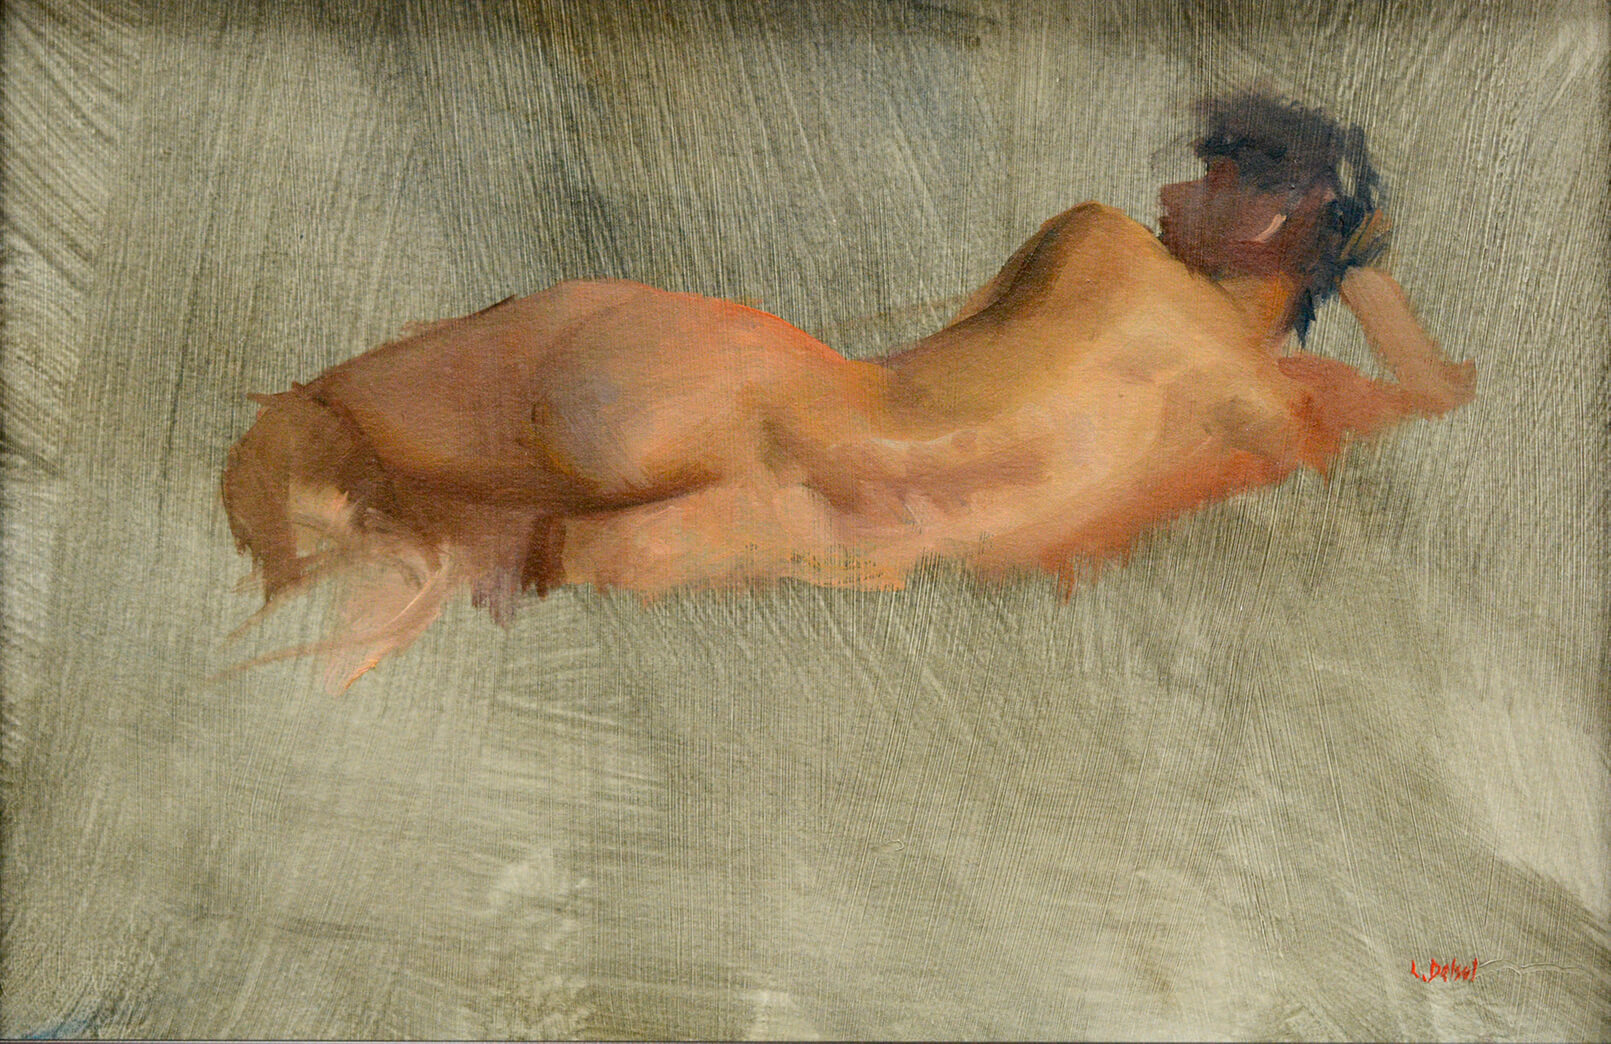 Gestural figurative oil painting of reclining nude woman from the back on lively brush stroked background